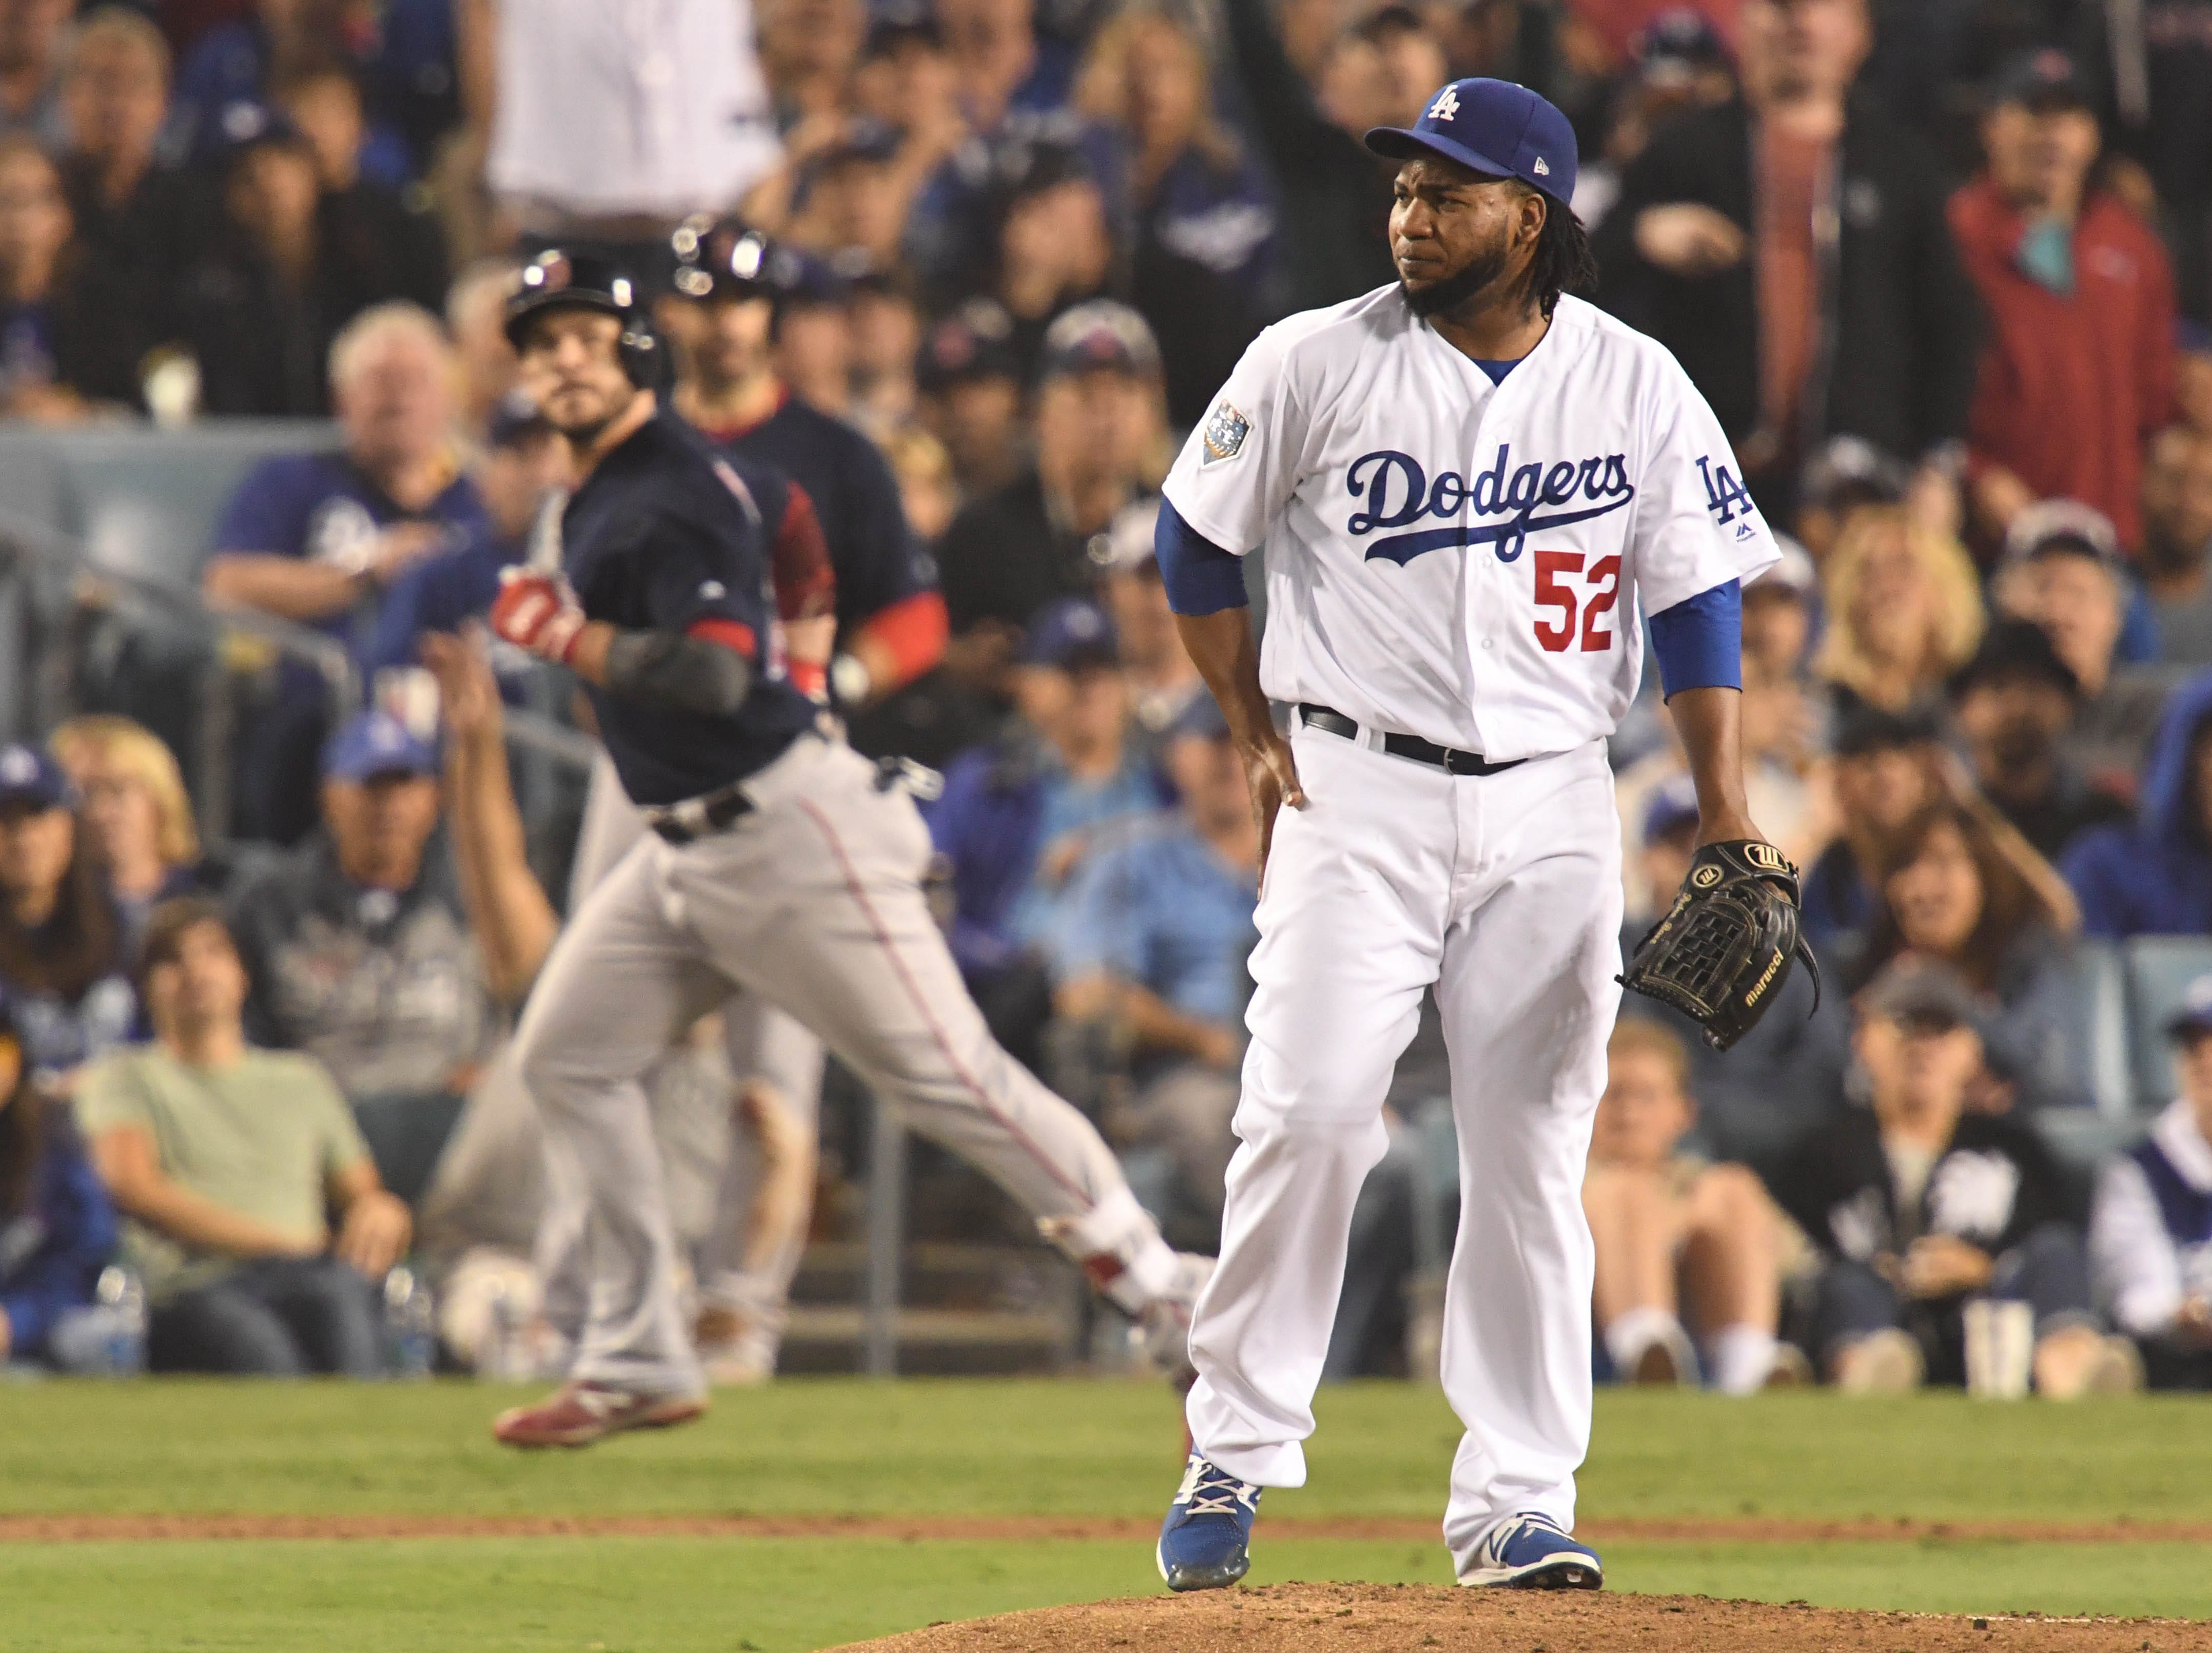 Game 5 at Dodger Stadium: Pedro Baez gives up a solo home run to Steve Pearce in the eighth inning.